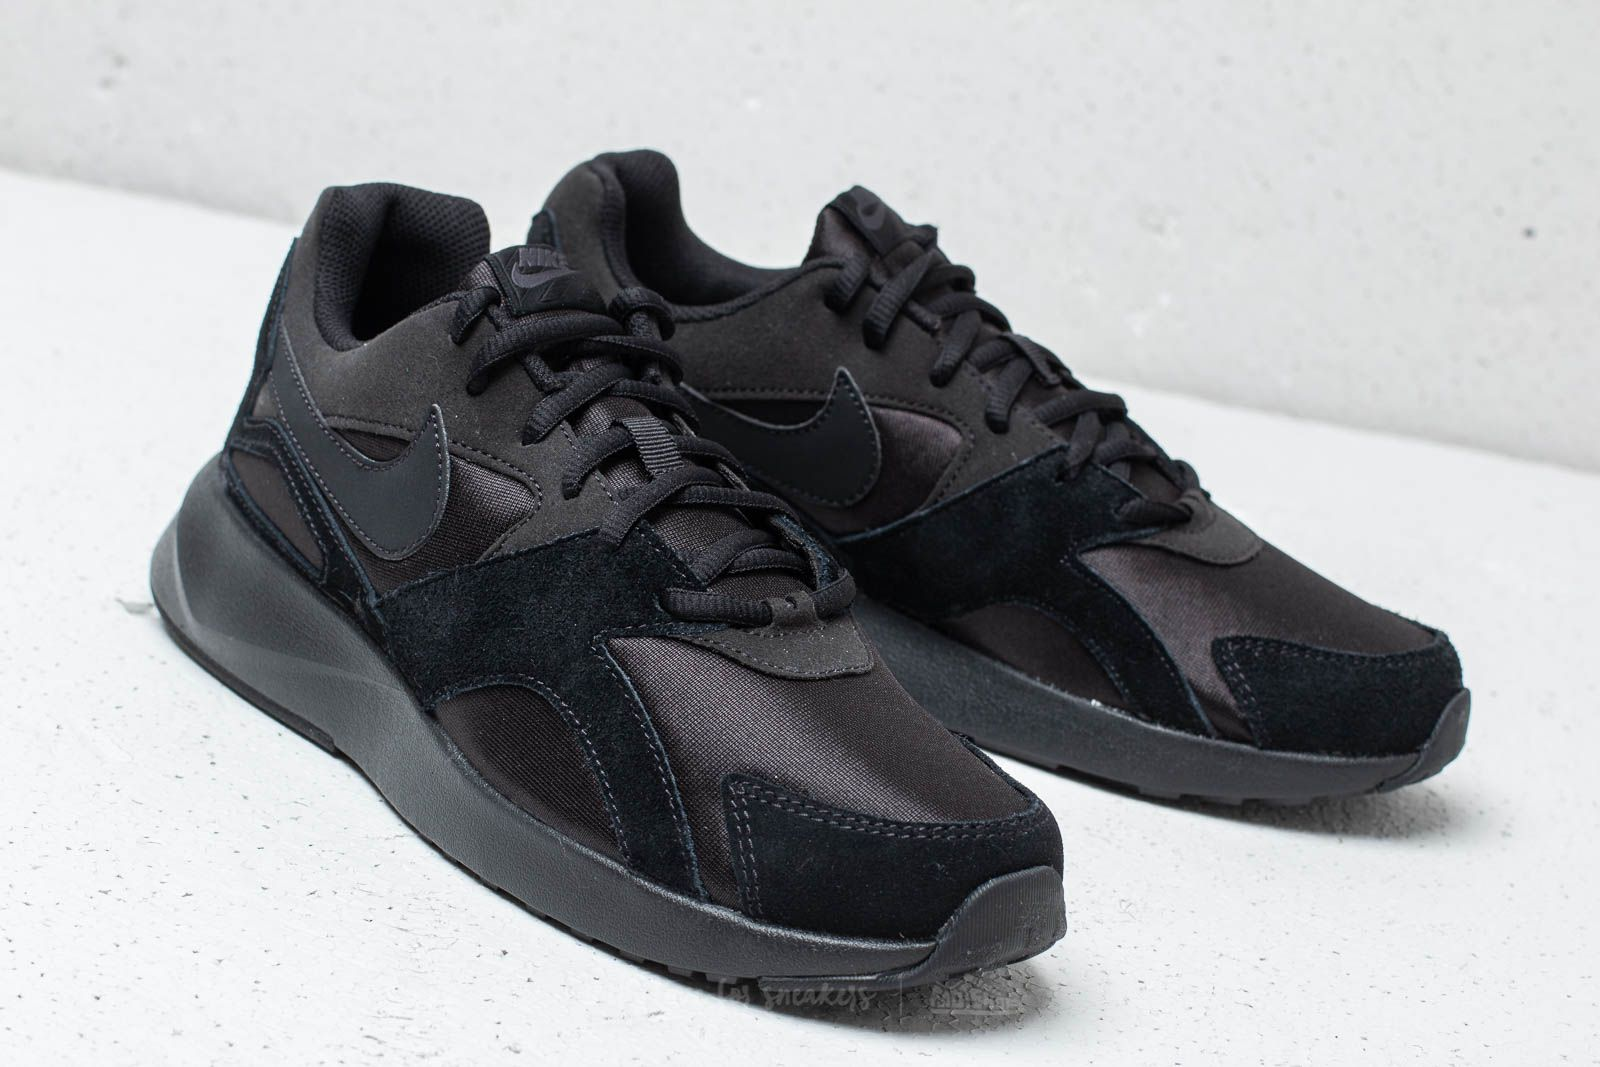 Nike Pantheos Black/ Black-Anthracite | Footshop